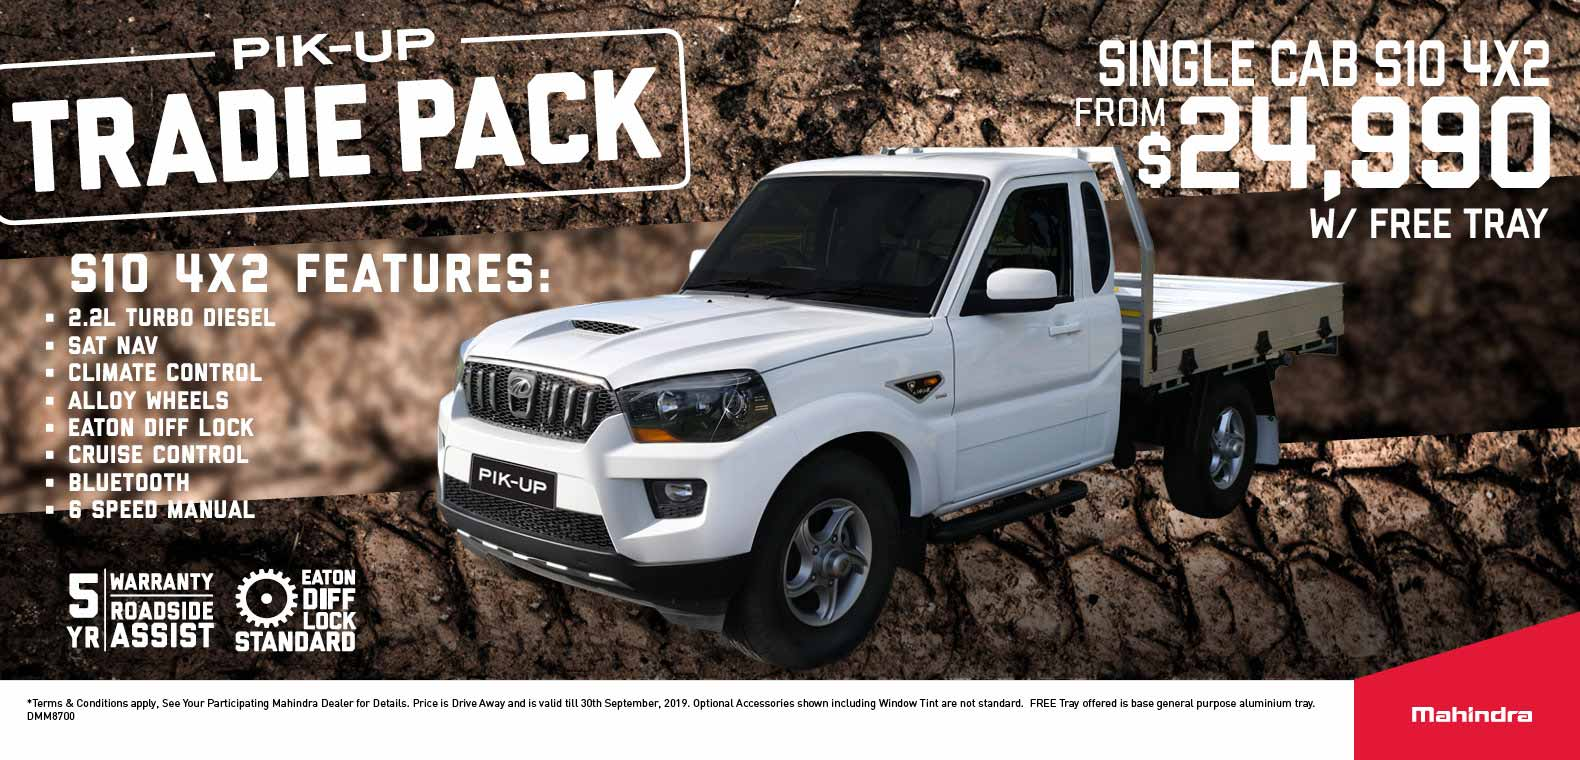 Mahindra Tradie Pack Offer